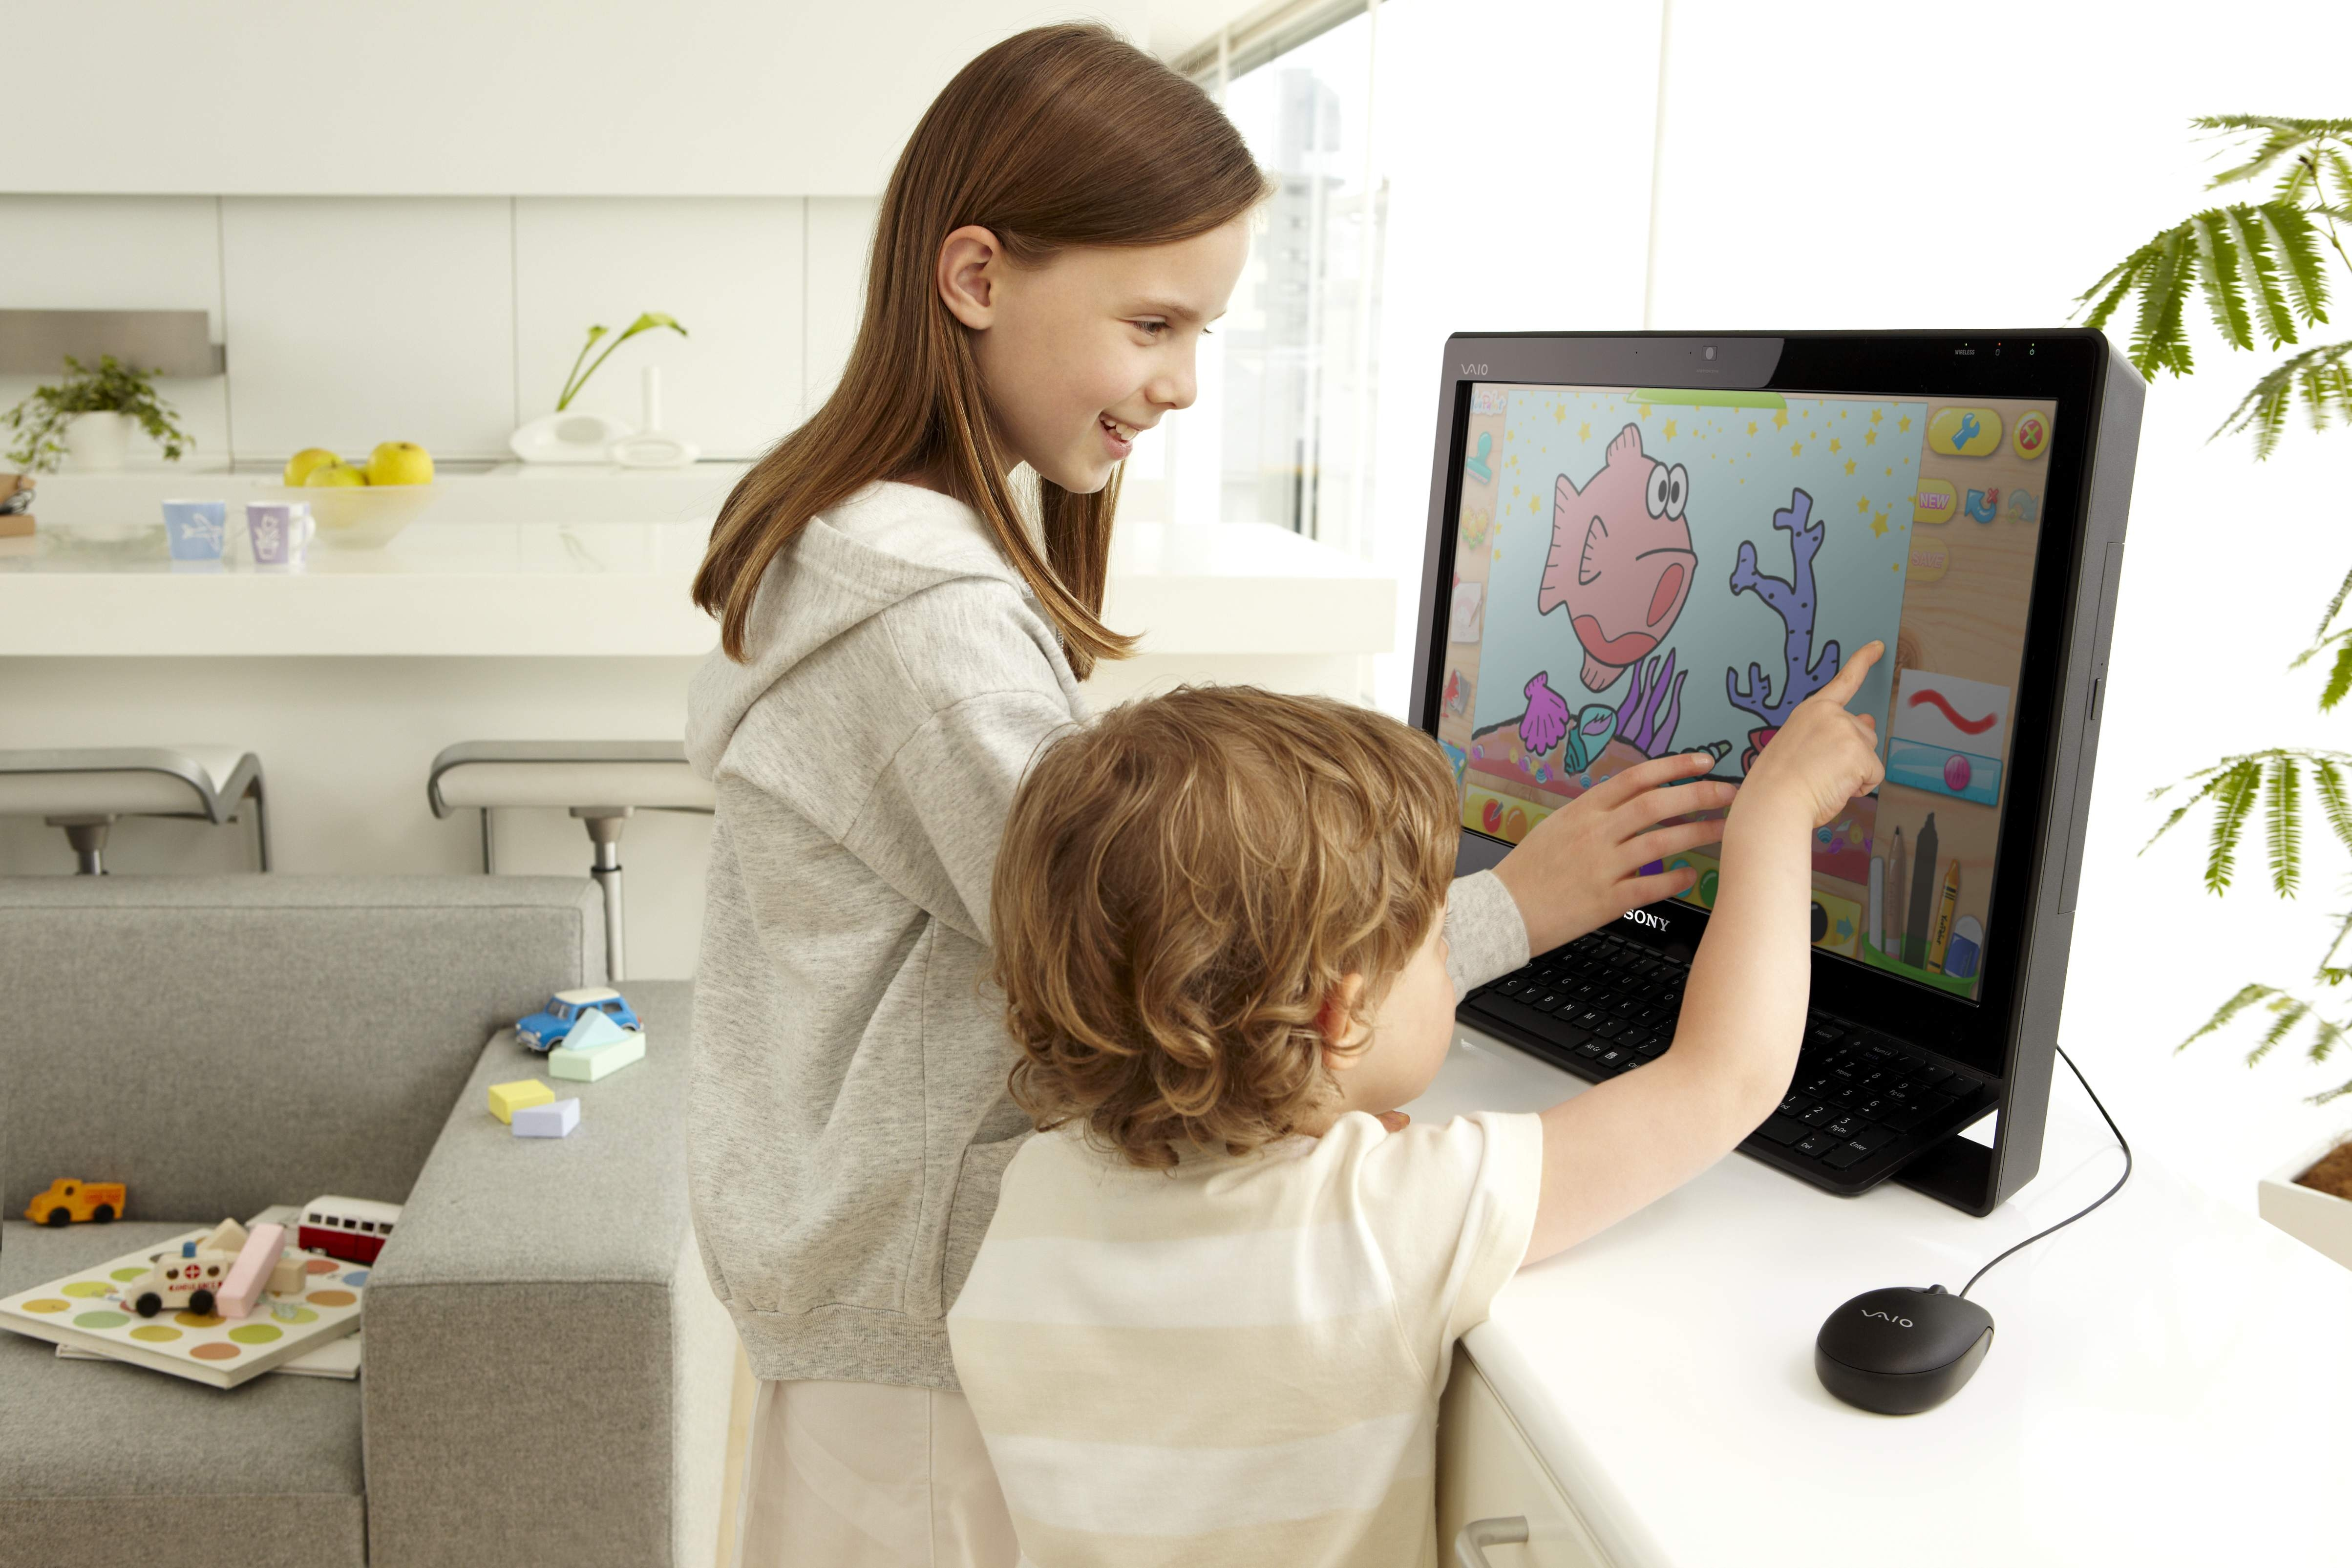 Sony Vaio J All-in-one PC